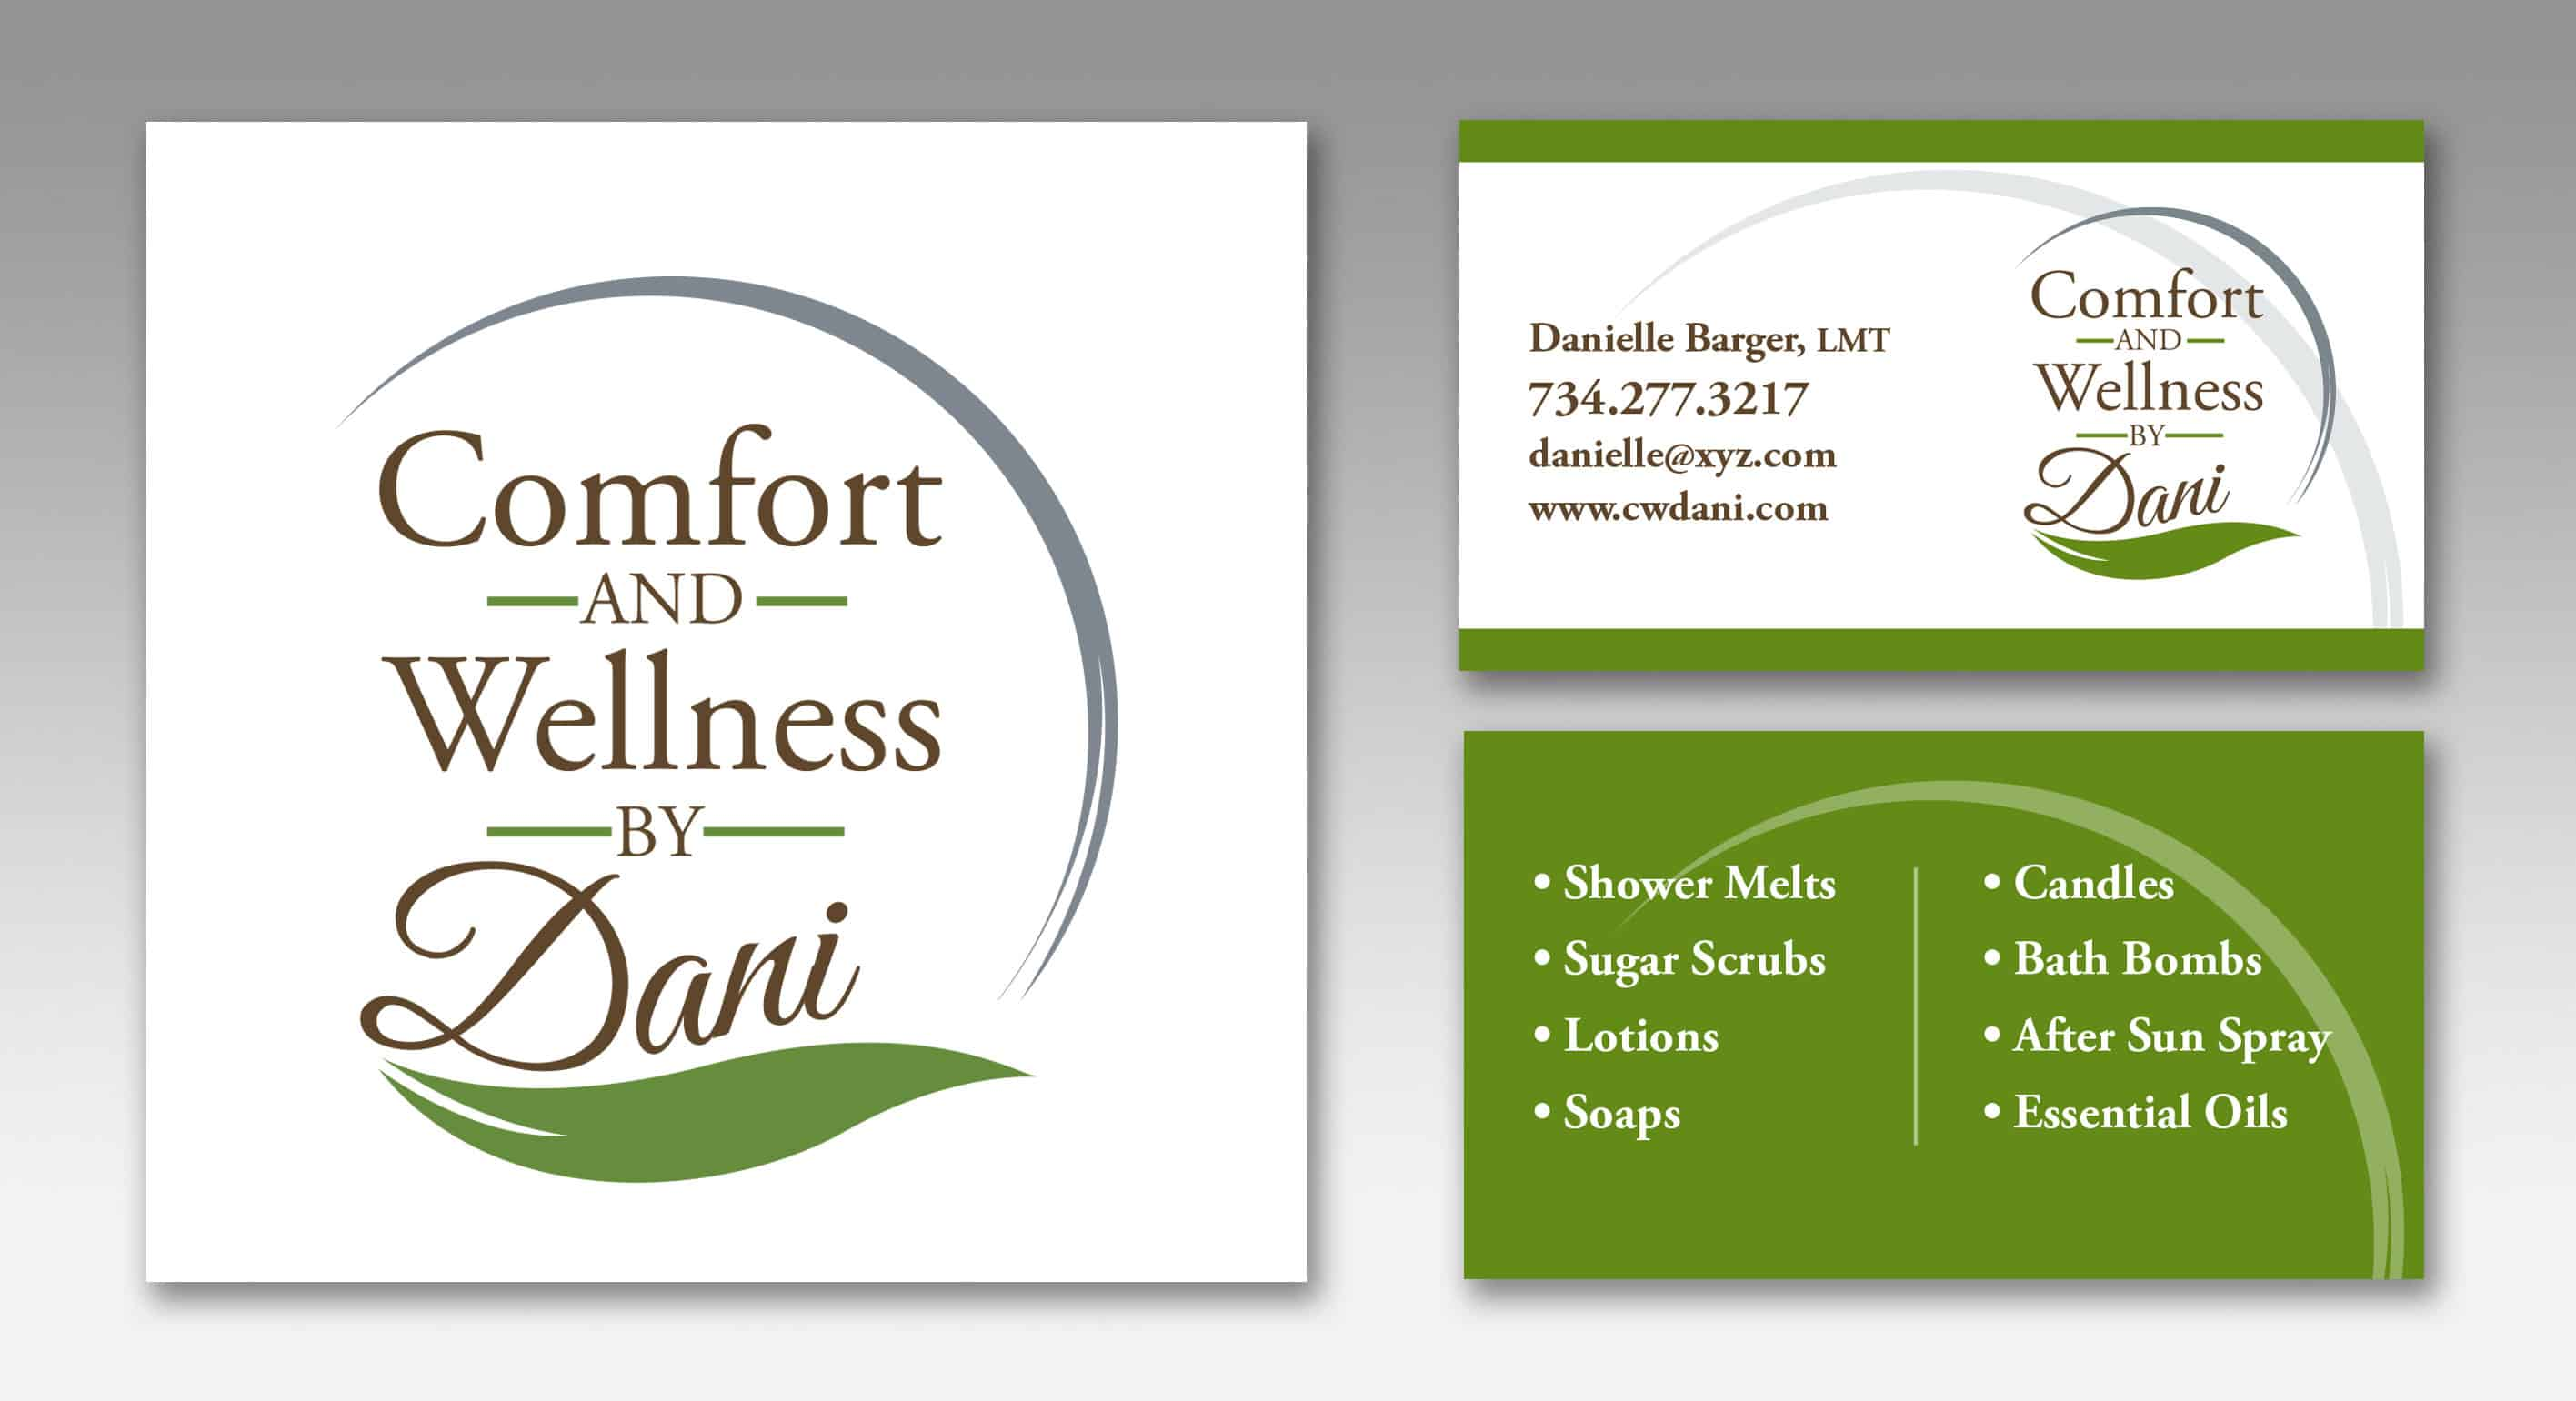 Comfort and Wellness By Dani